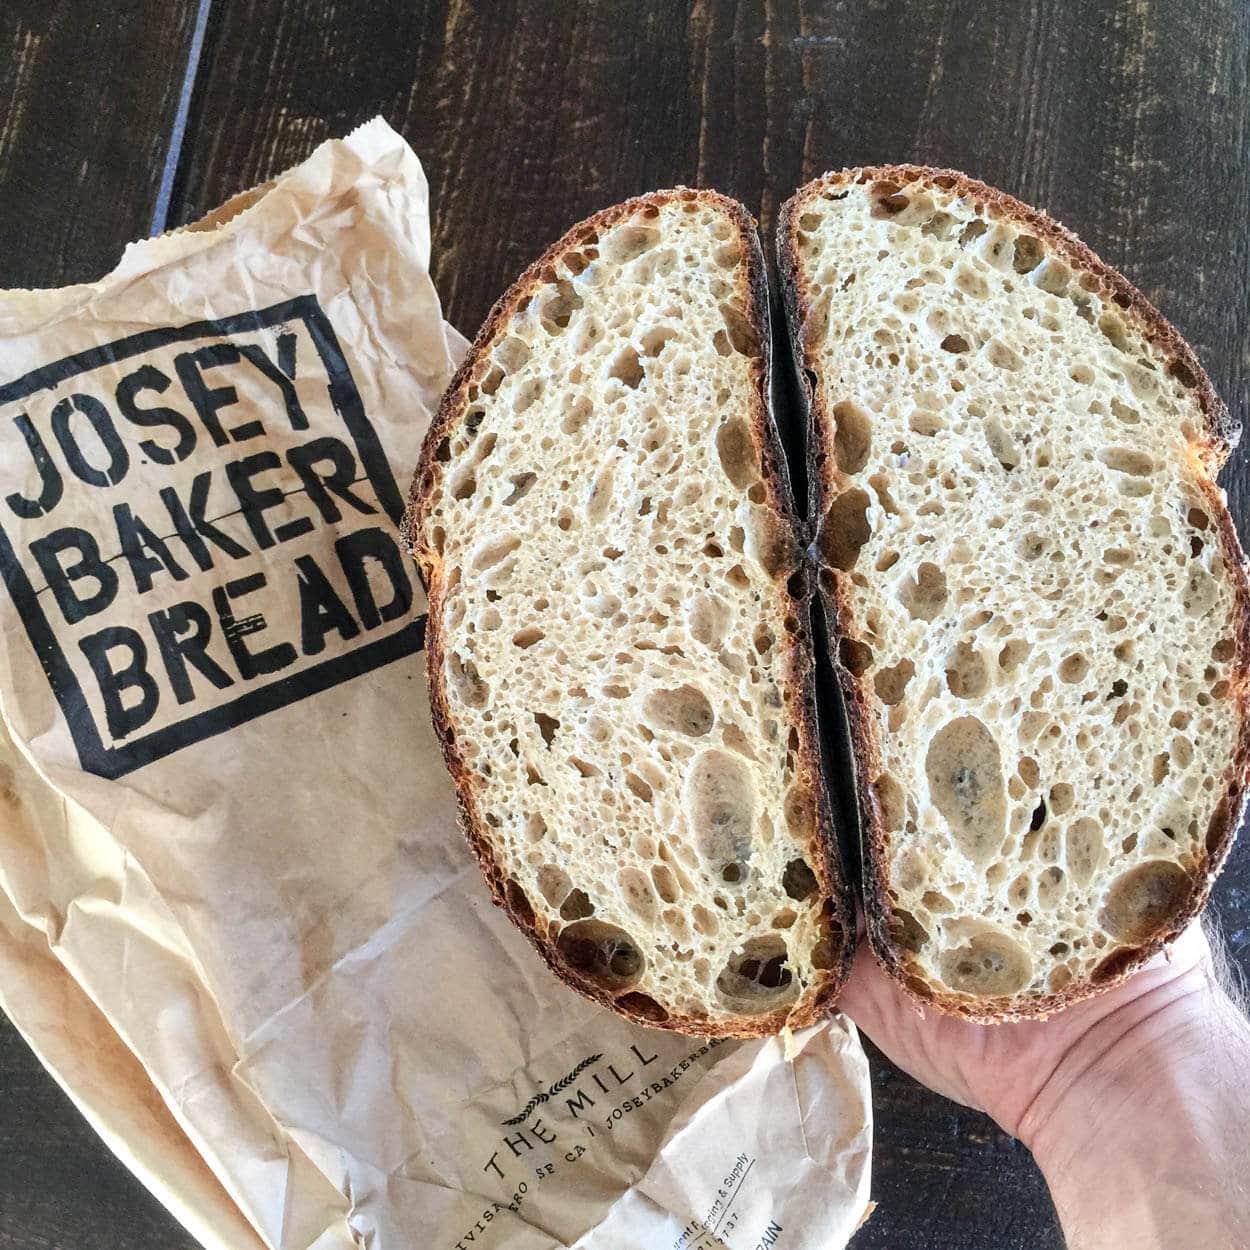 baking with stoneground red wheat, Josey's crumb